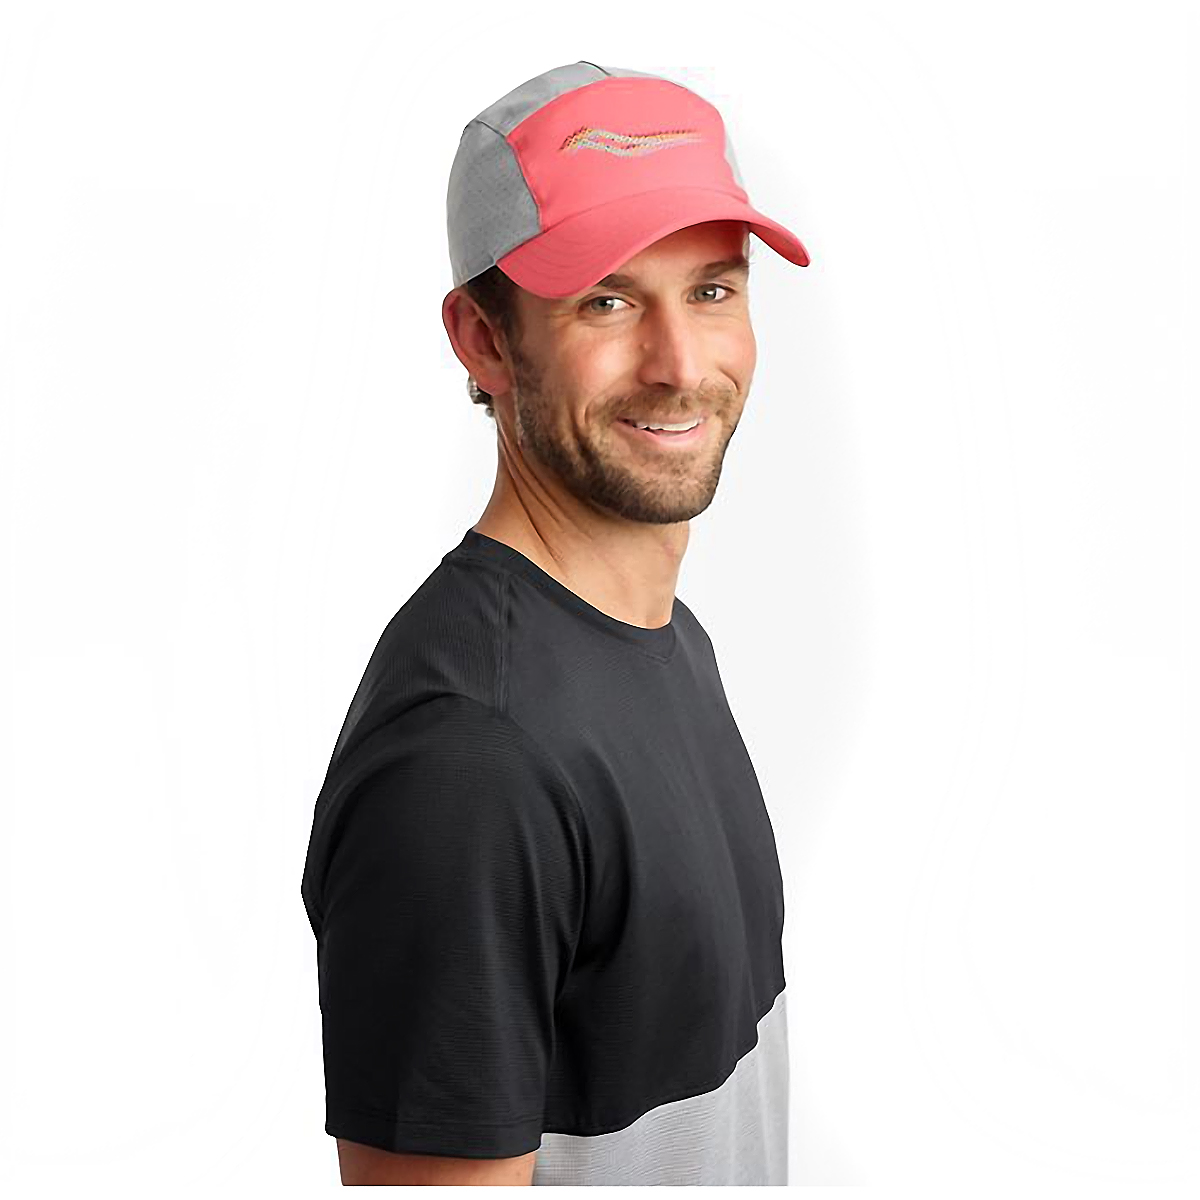 Saucony Outpace Hat - Color: Calypso Coral, Calypso Coral, large, image 3